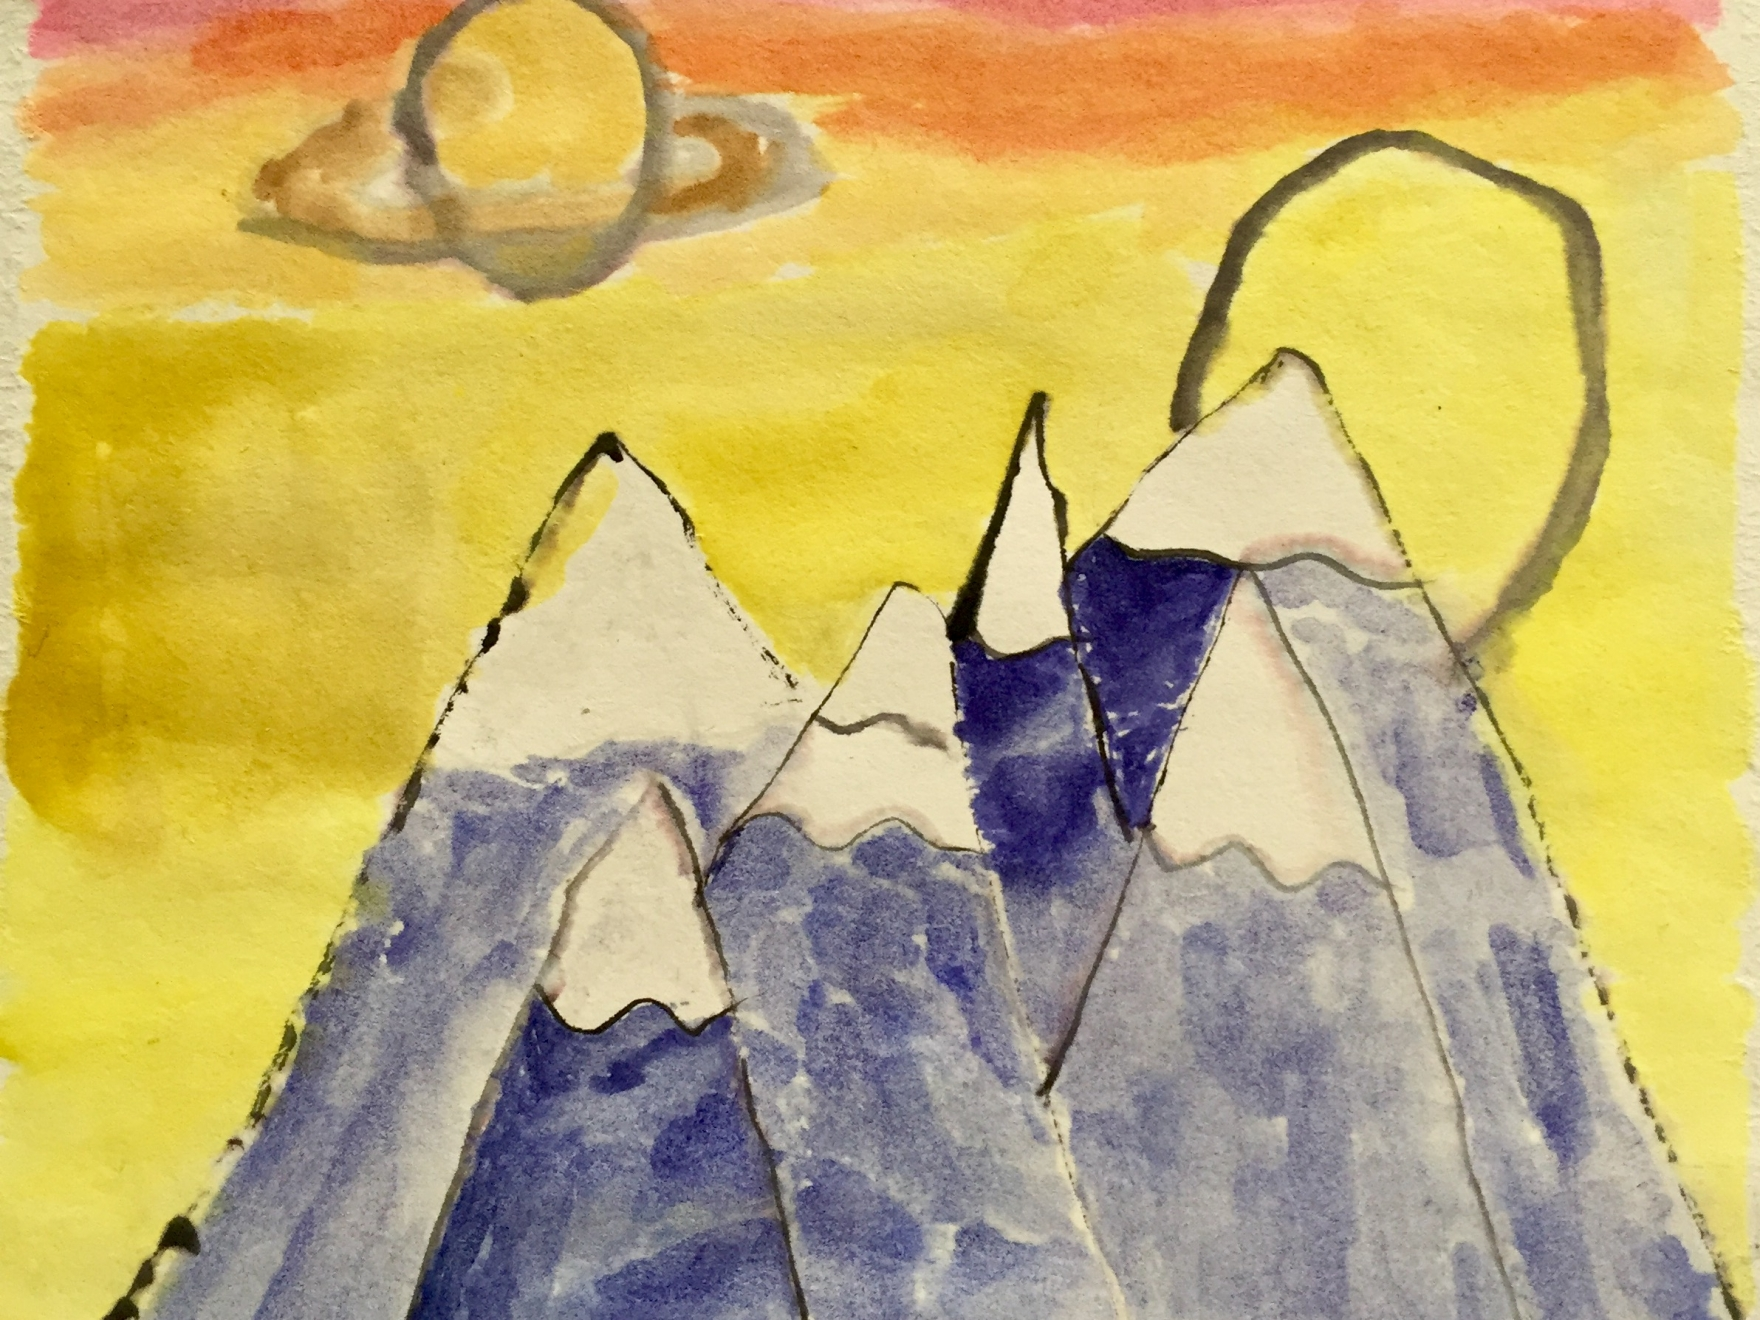 landscape painting childrens saturday studio art class ages 9 11 - Painting For Childrens